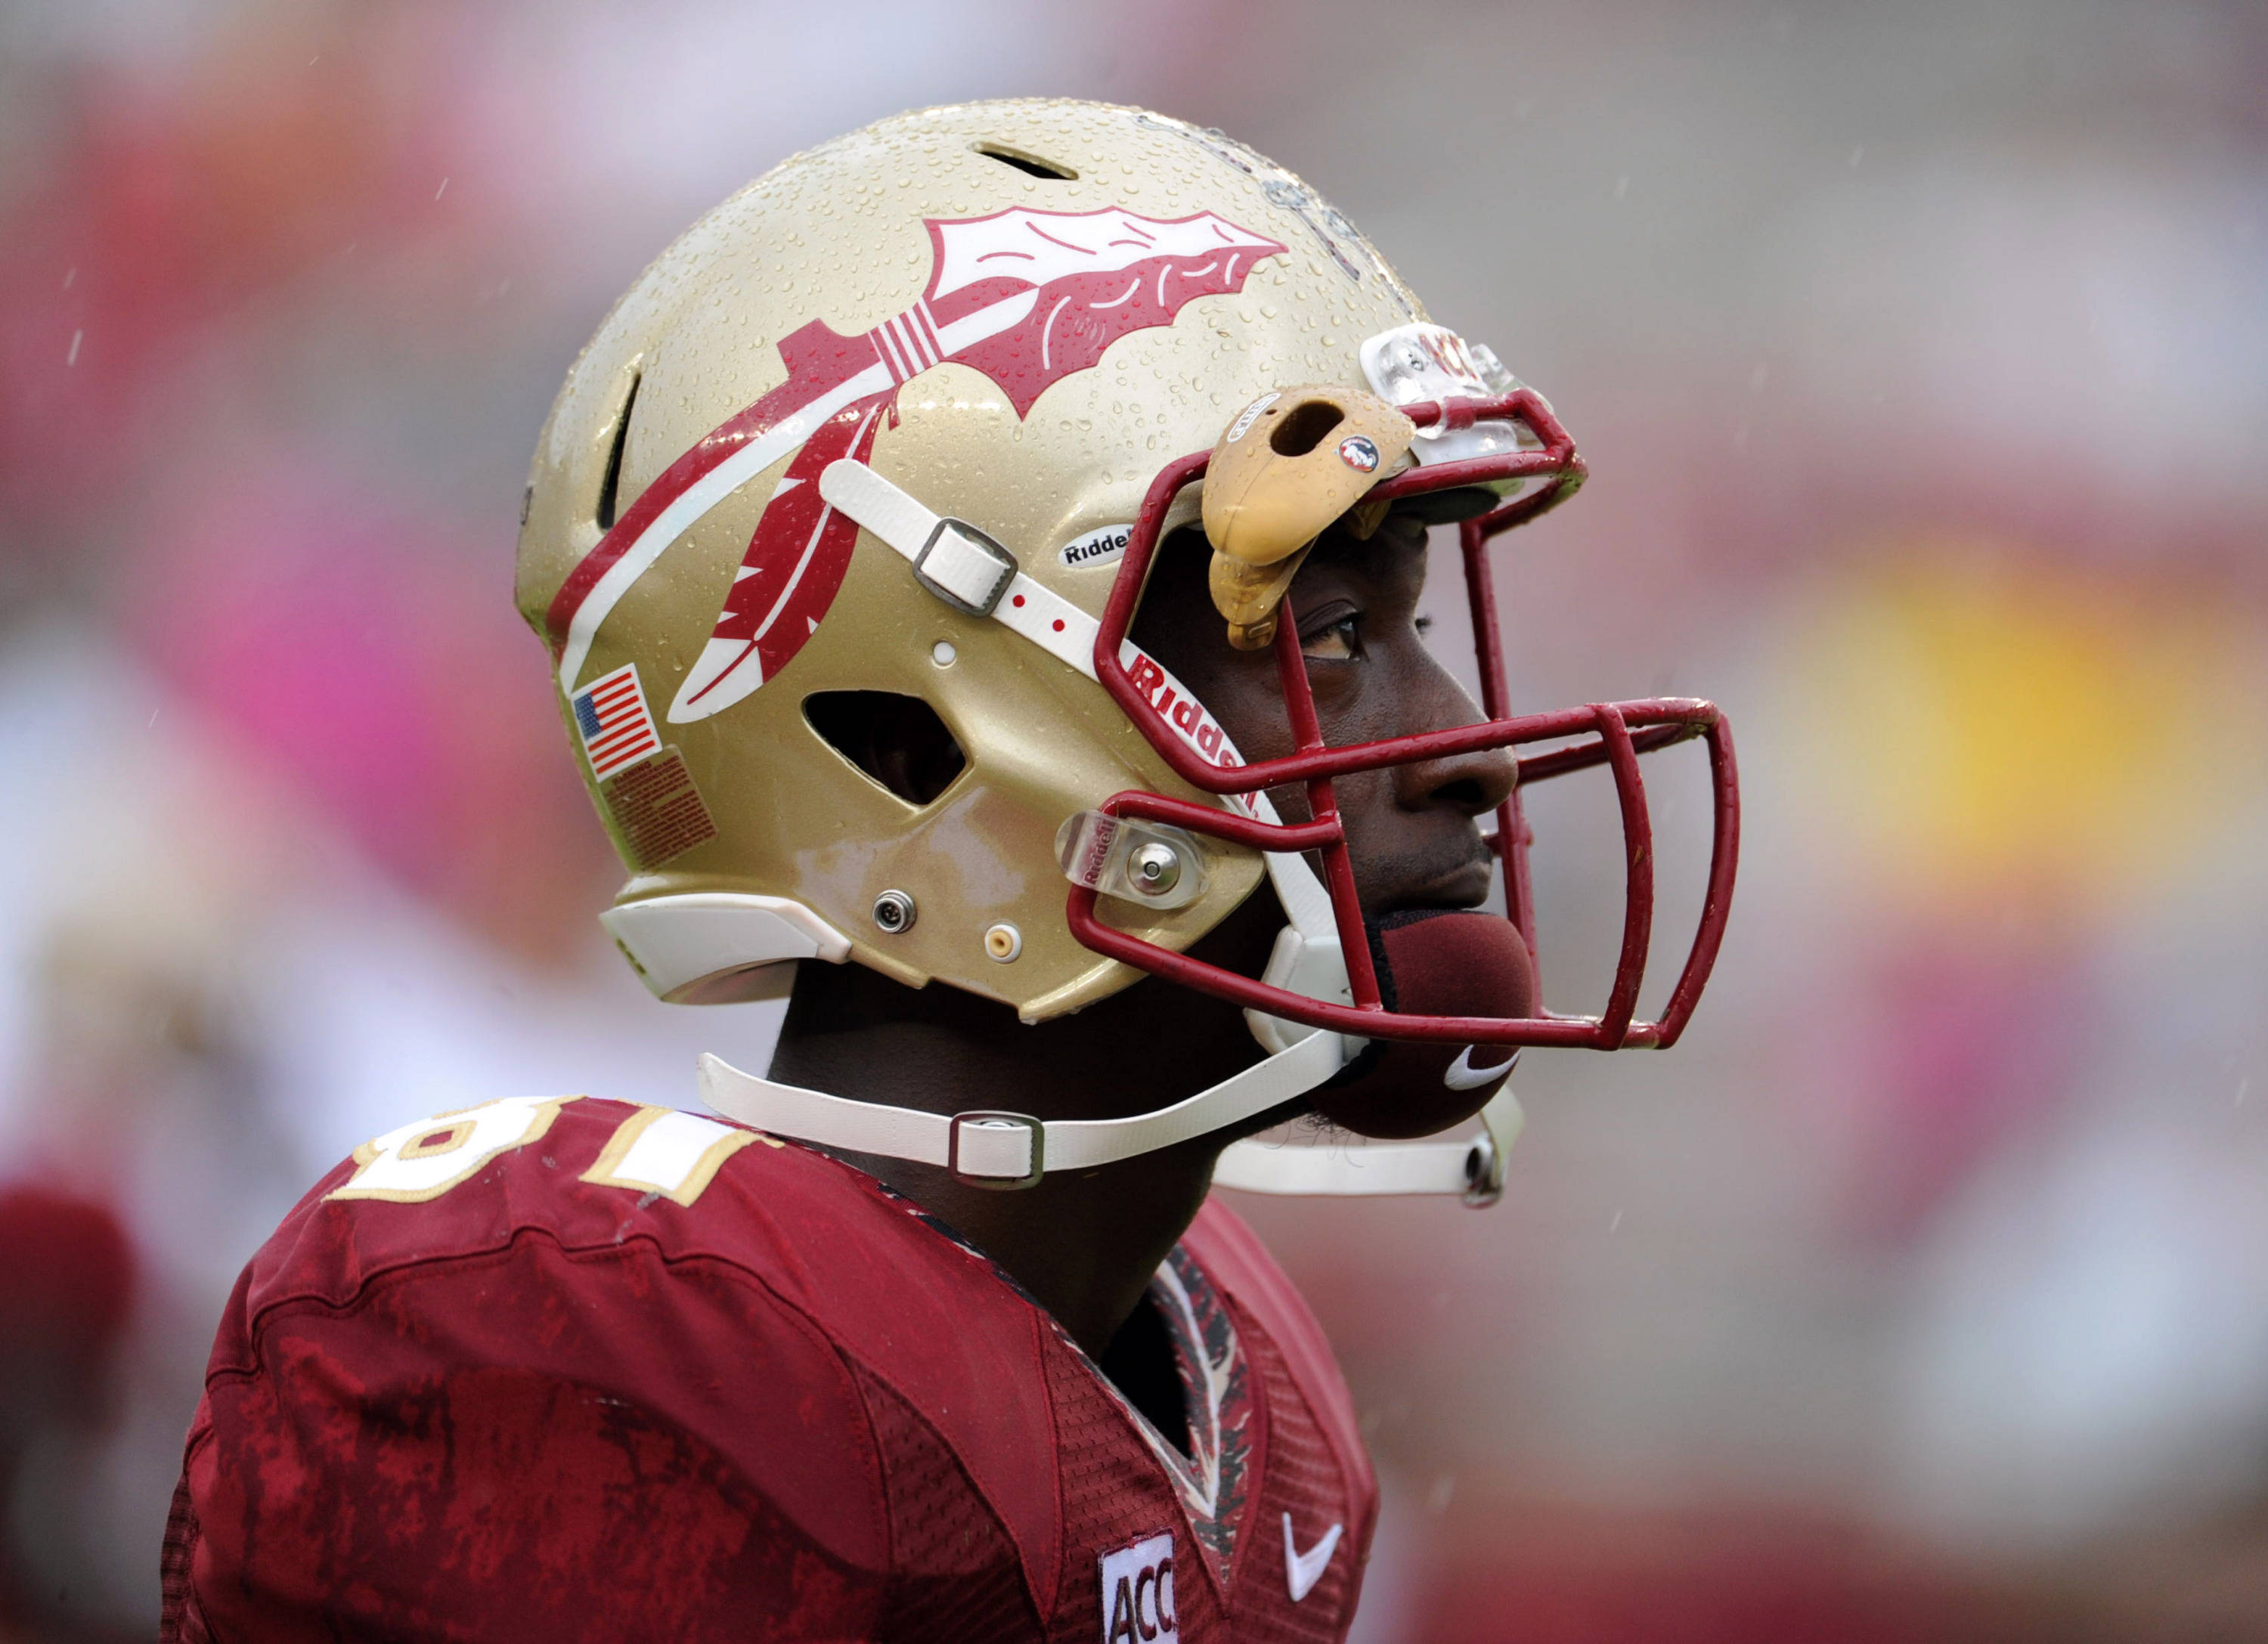 Florida State Seminoles wide receiver Kenny Shaw (81) before the start of the game against the Bethune-Cookman Wildcats. (Melina Vastola-USA TODAY Sports)